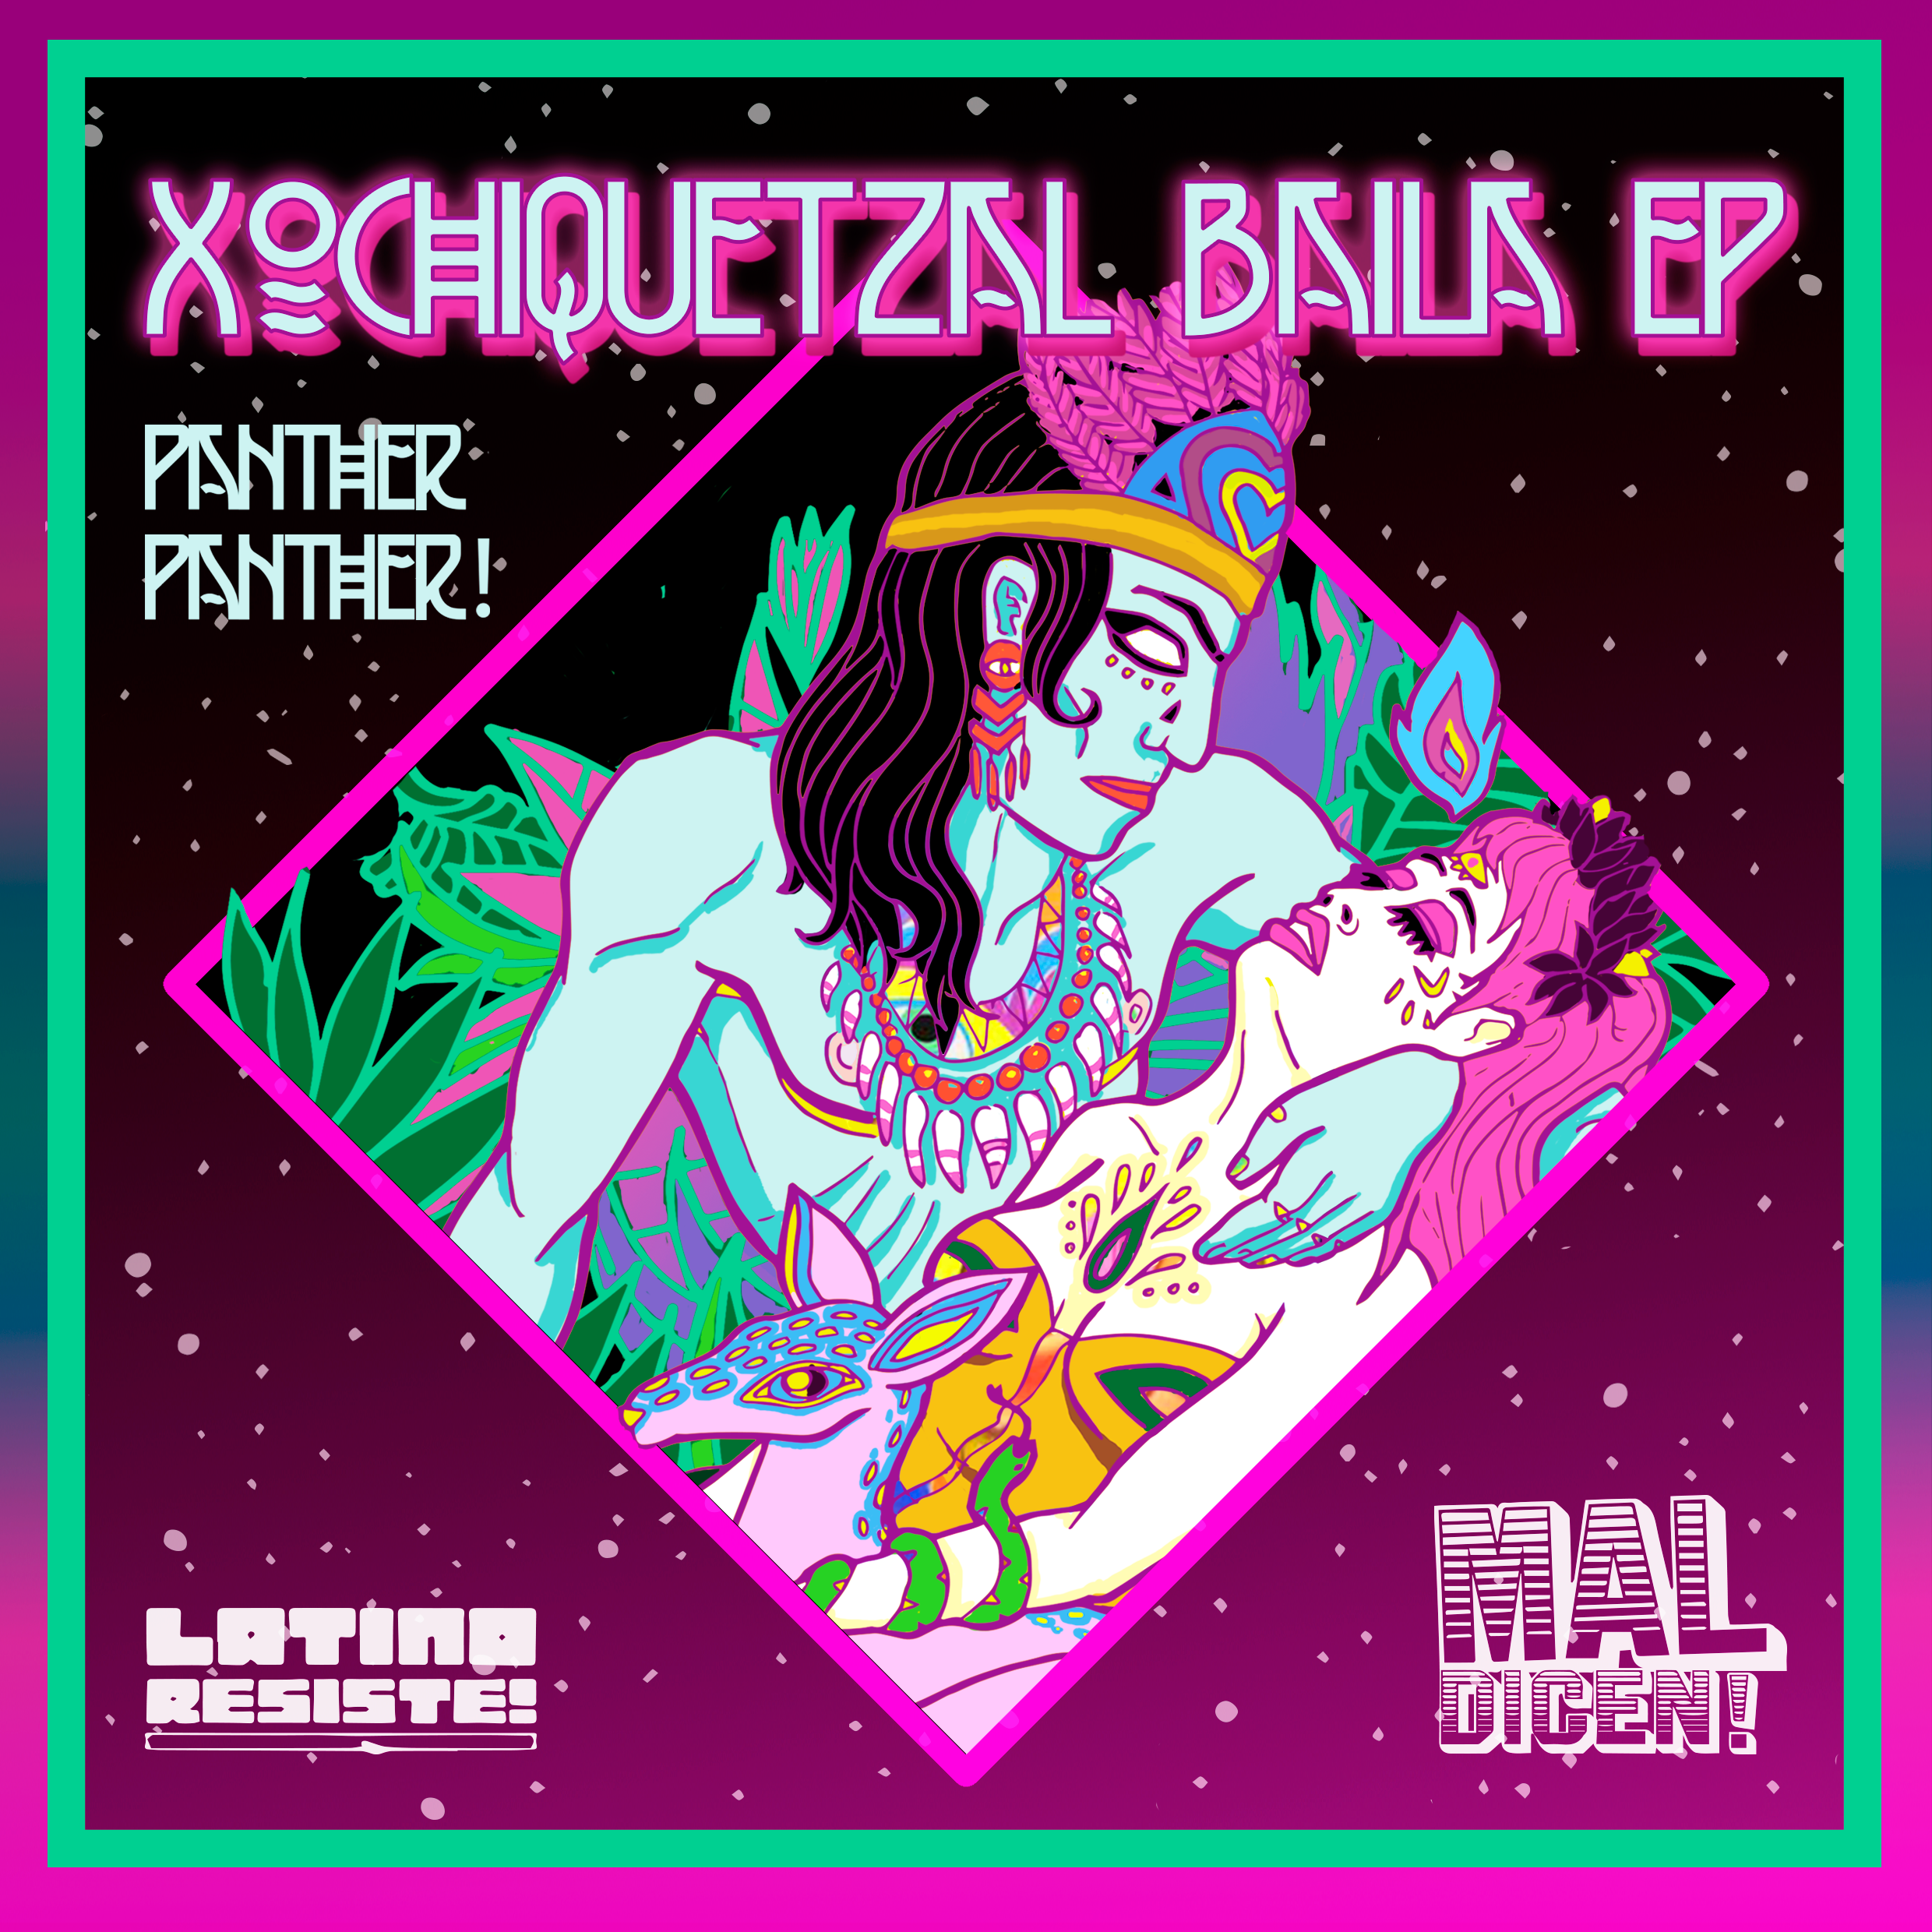 Latino Resiste - Panther Panther- Xochiquetzal Baila - cover.png